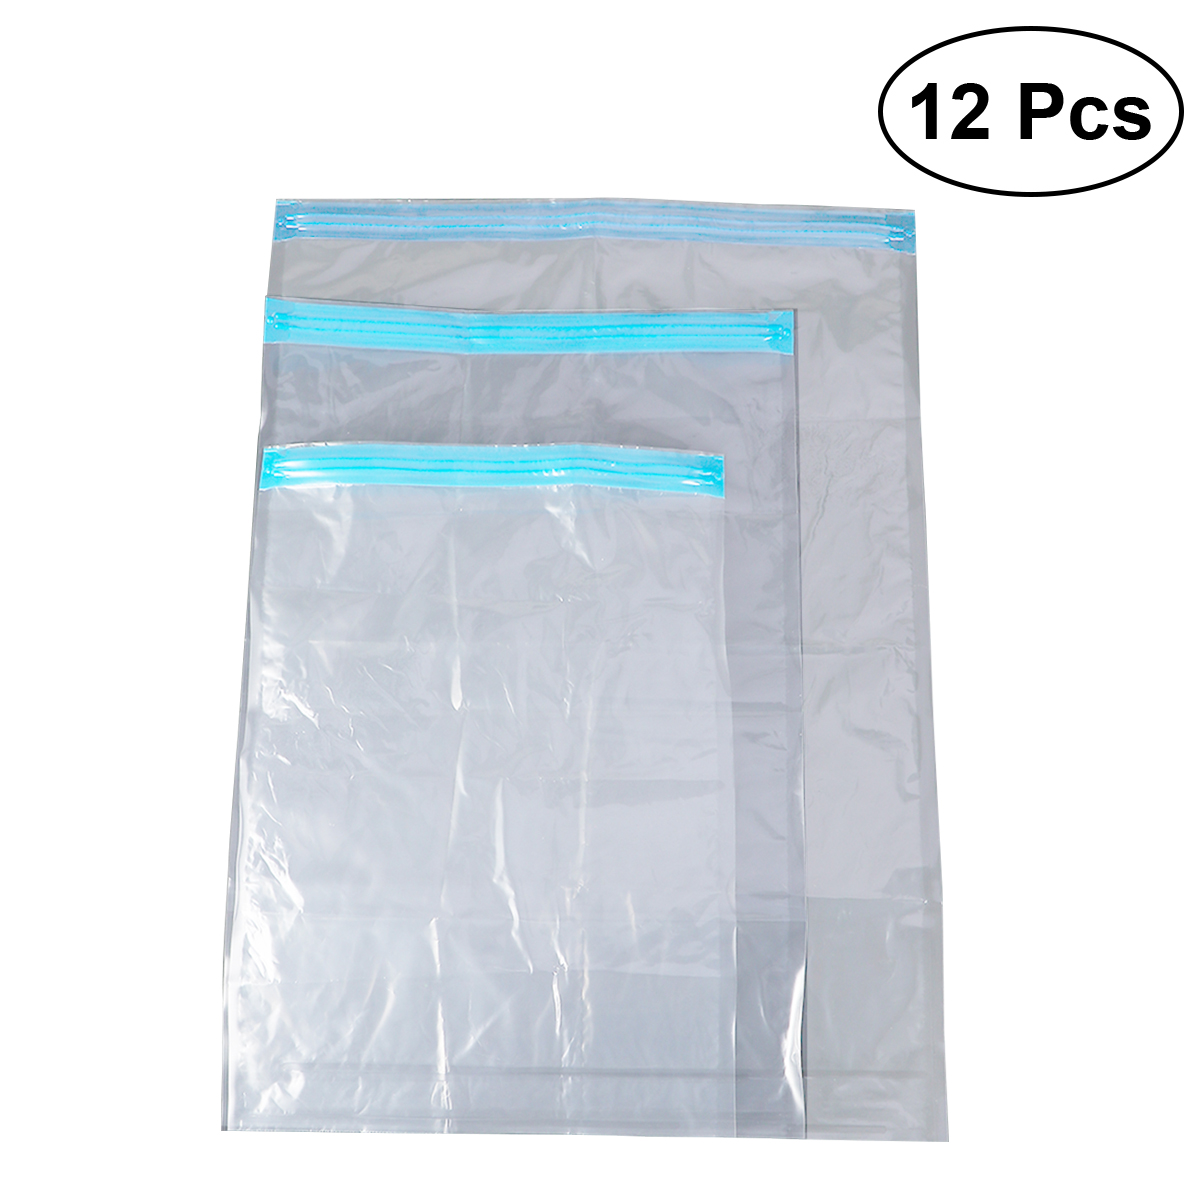 12pcs Compression Storage Bags Waterproof Space Saver Bags Roll Up Travel Bags For Clothes Dress Down Jacket